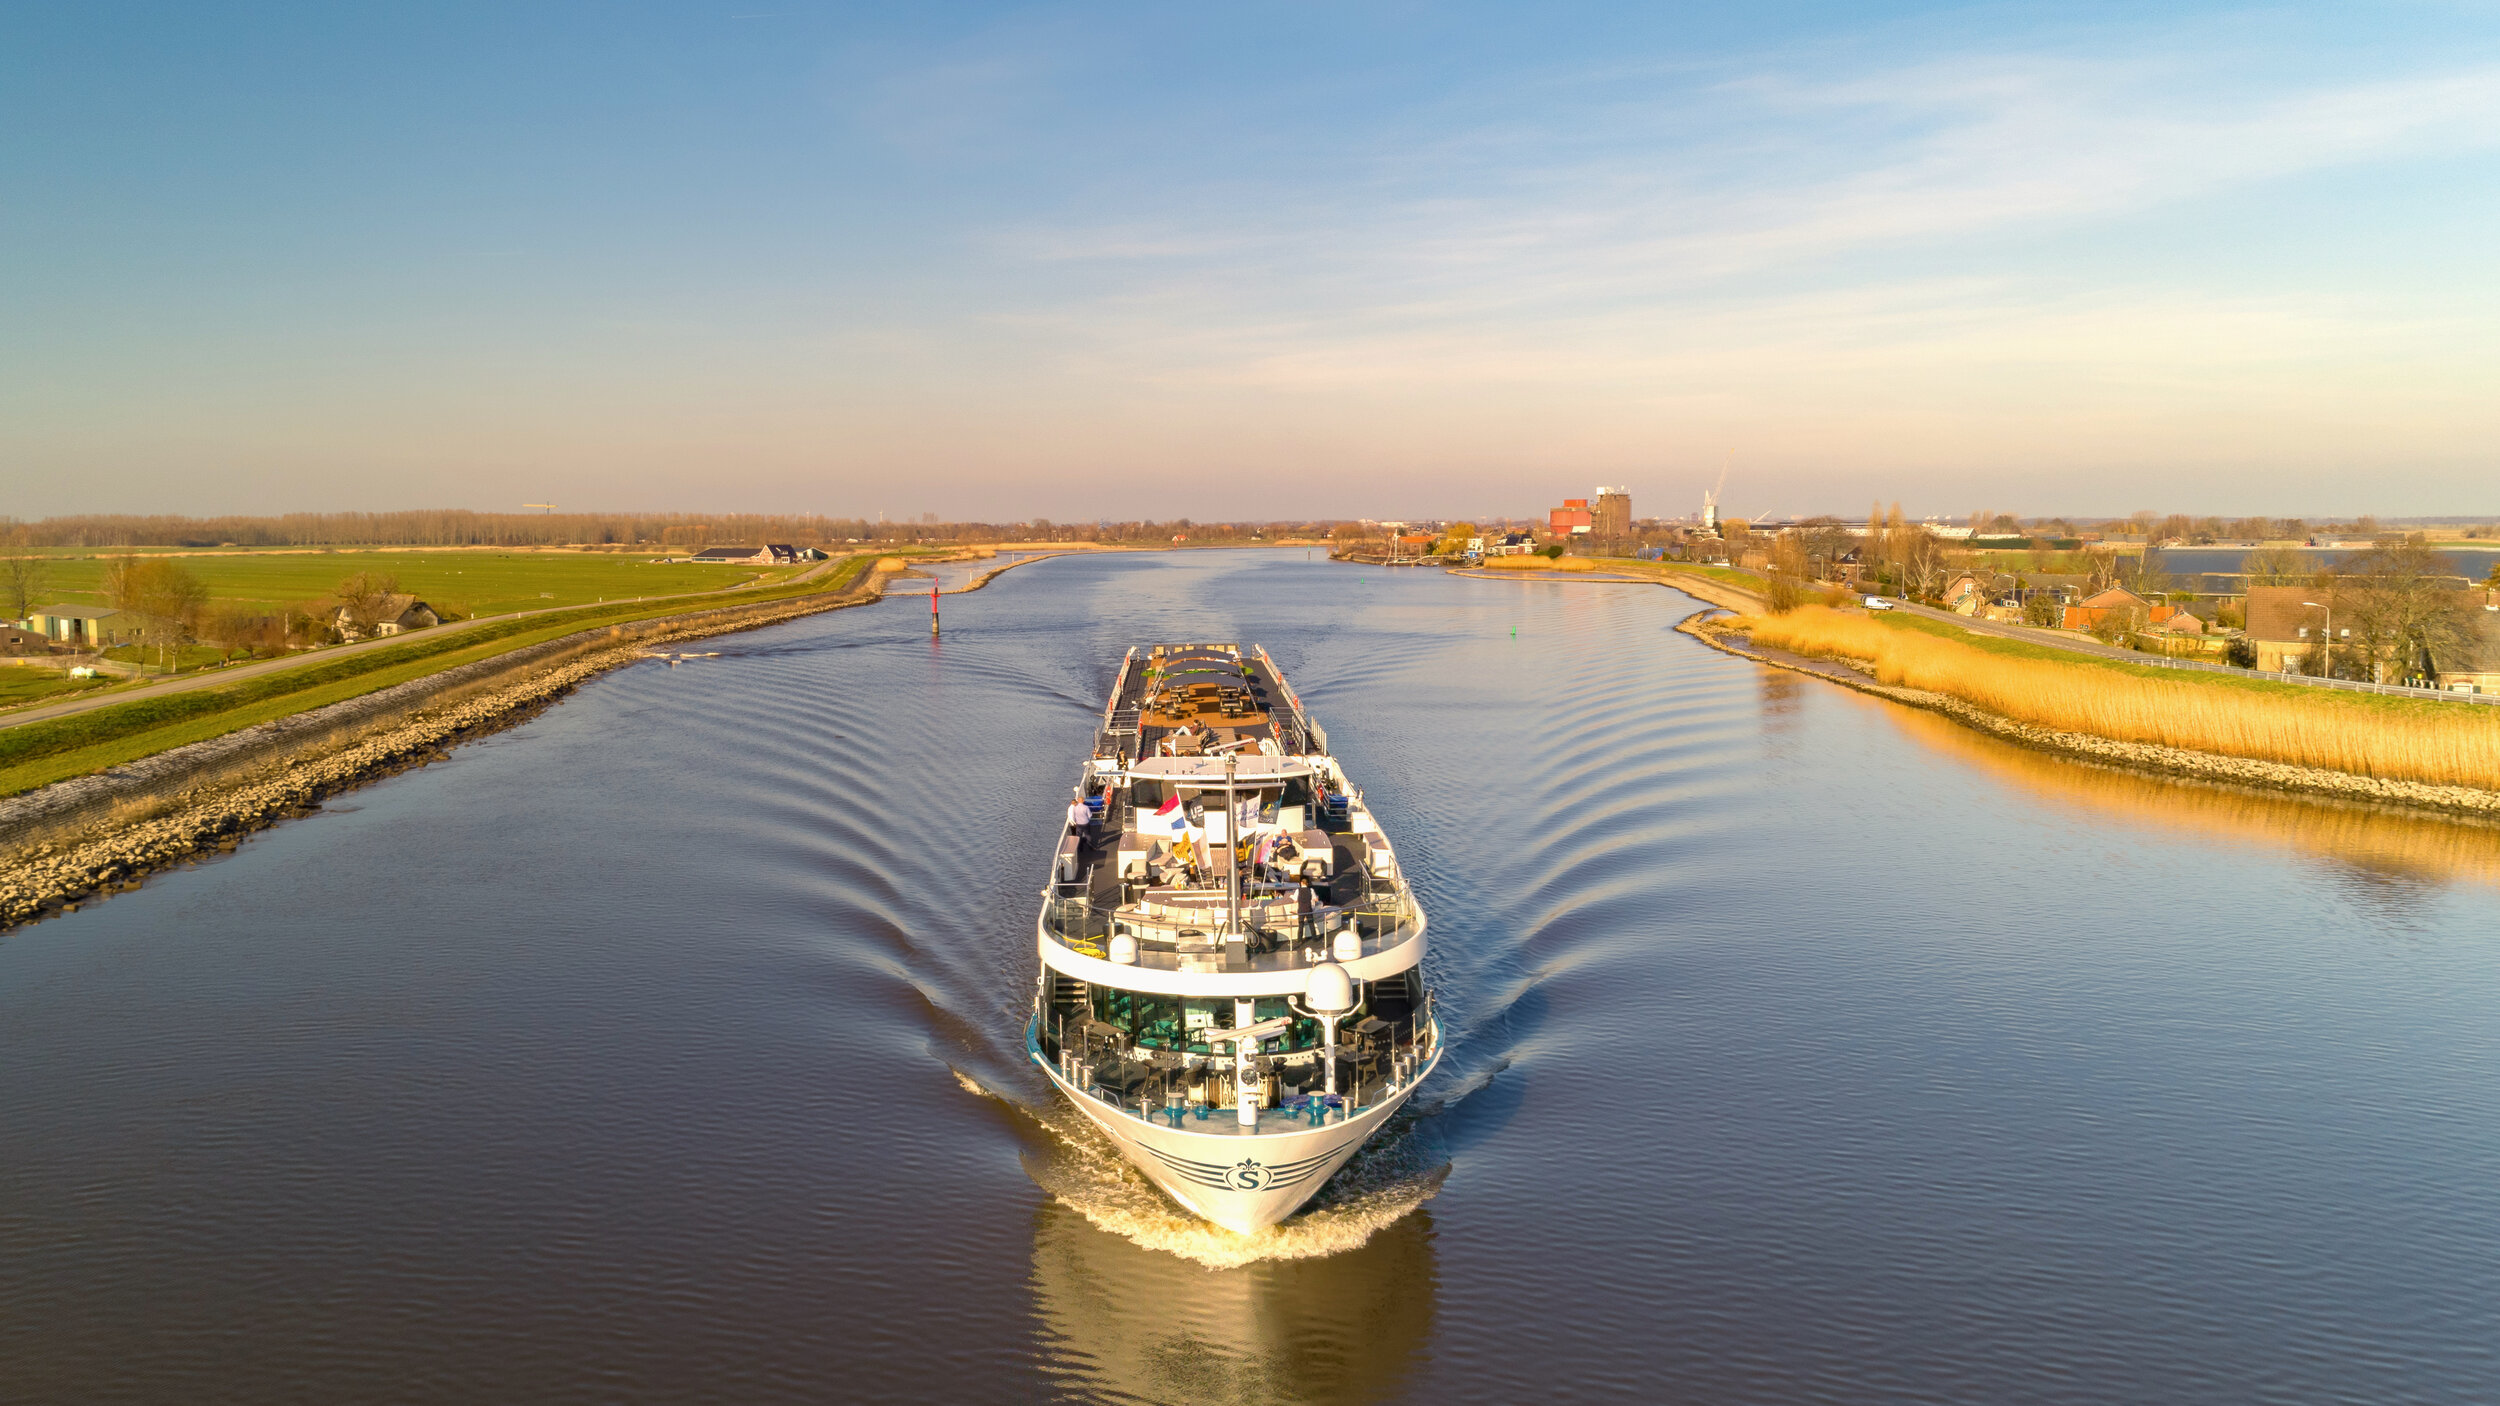 Scylla: A River Cruise Company With A Green Vision — Sea Going Green